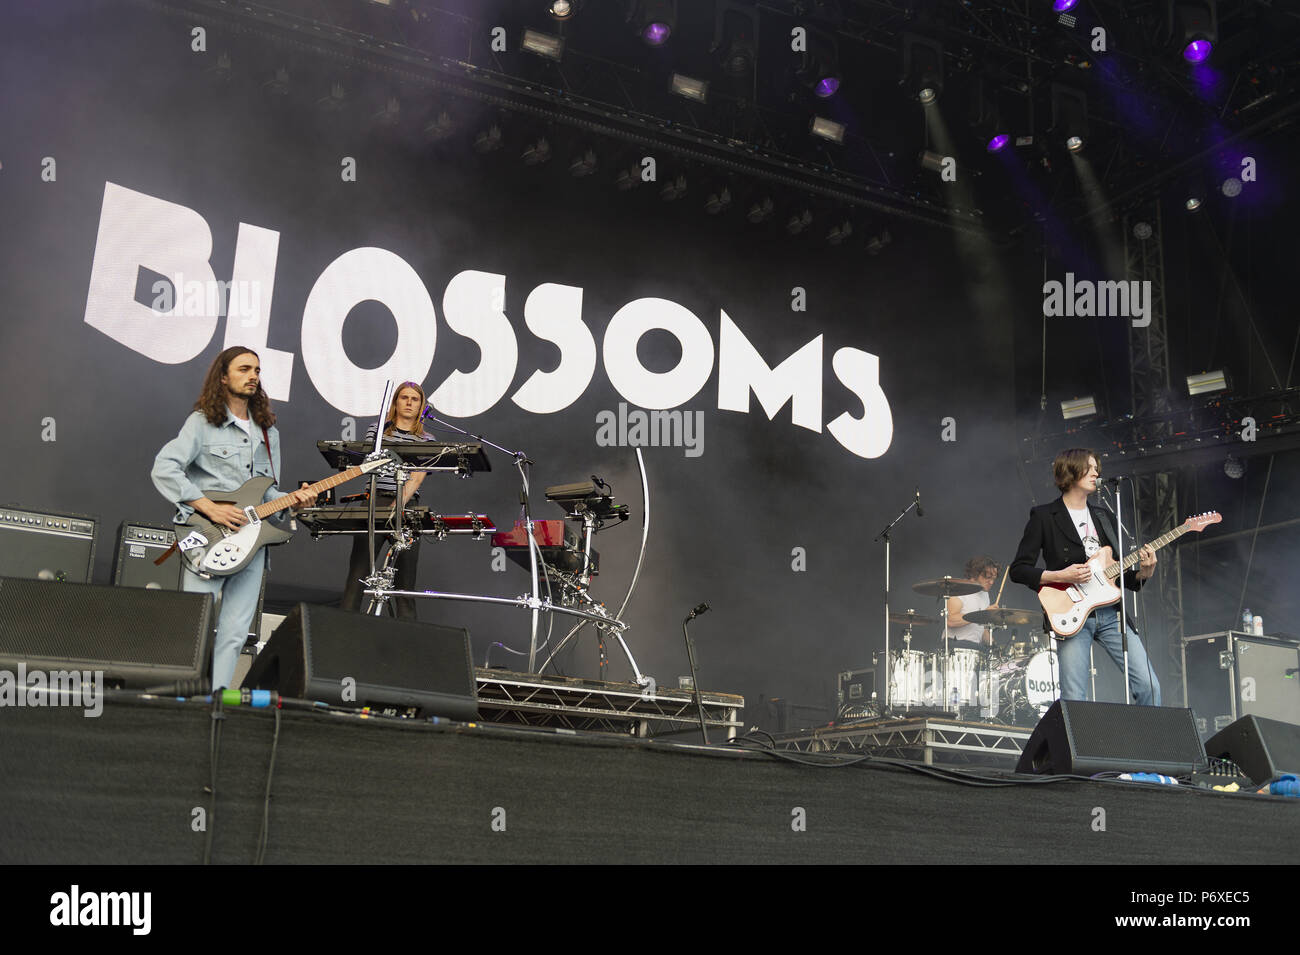 Blossoms perform at All Points East Festival  Featuring: Tom Ogden, Charlie Salt, Josh Dewhurst, Joe Donovan, Myles Kellock Where: London, United Kingdom When: 01 Jun 2018 Credit: Simon Reed/WENN.com - Stock Image